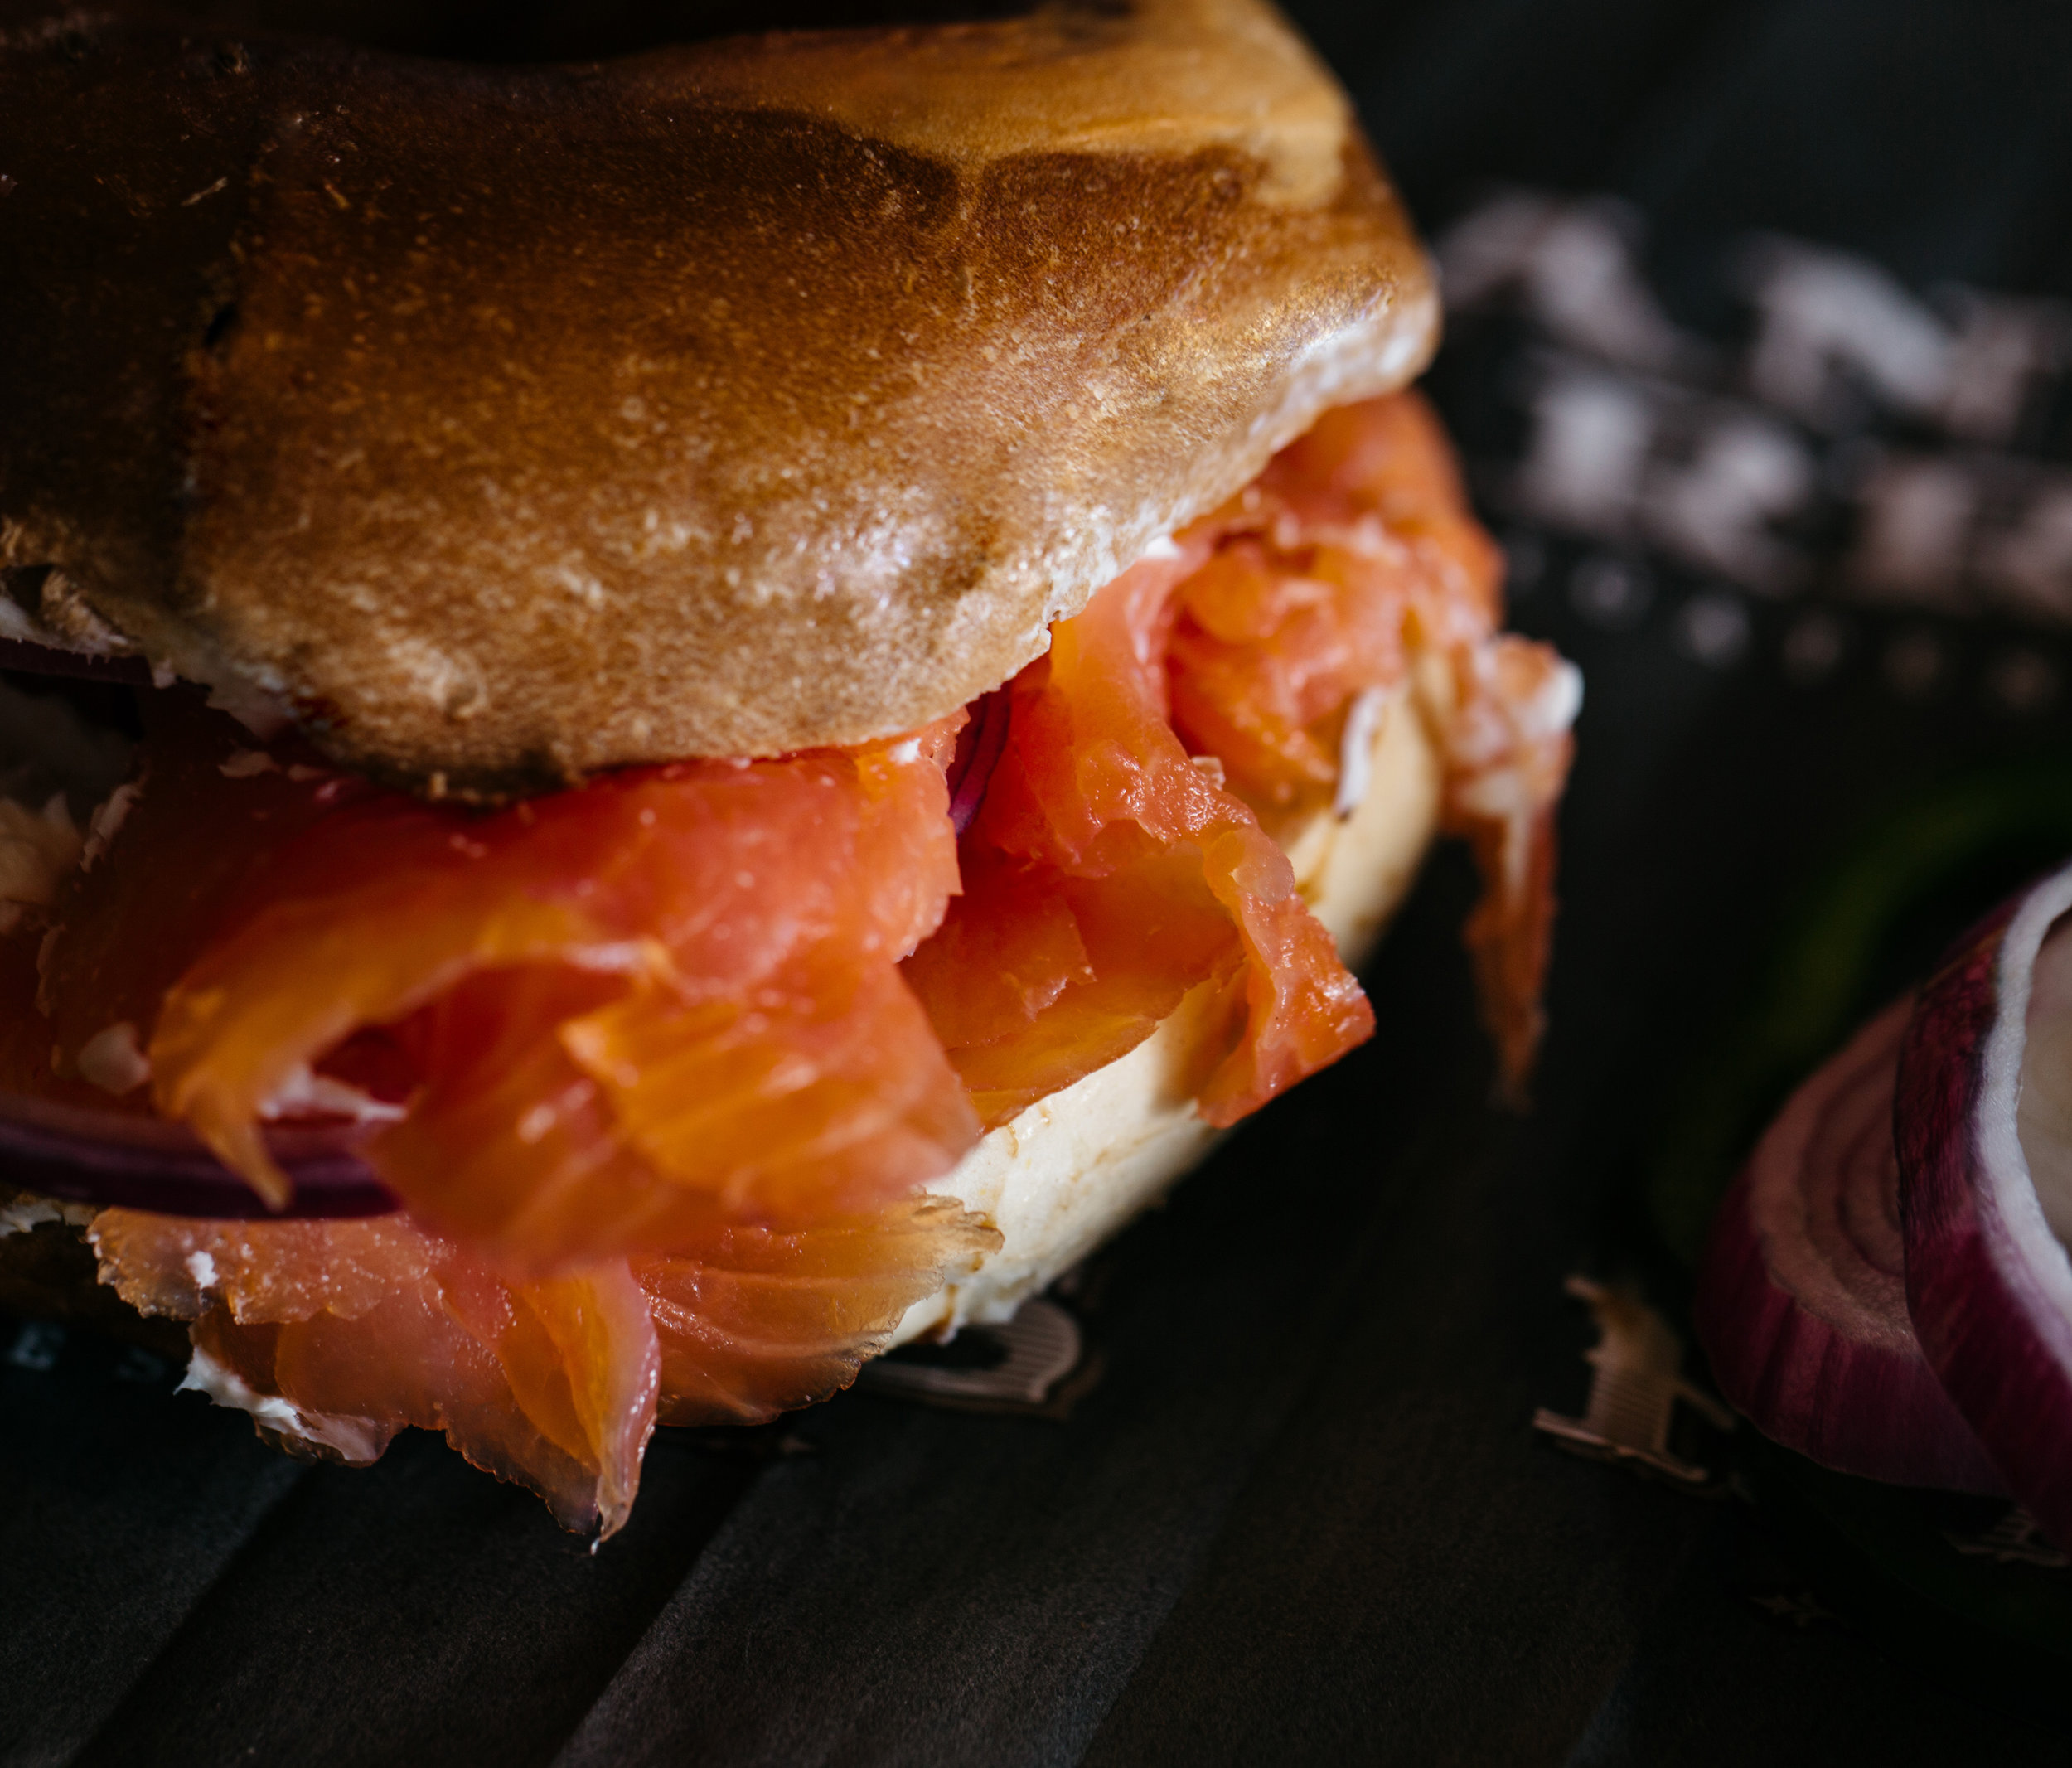 Hank and Harry's Miami Beach Bagel and Lox